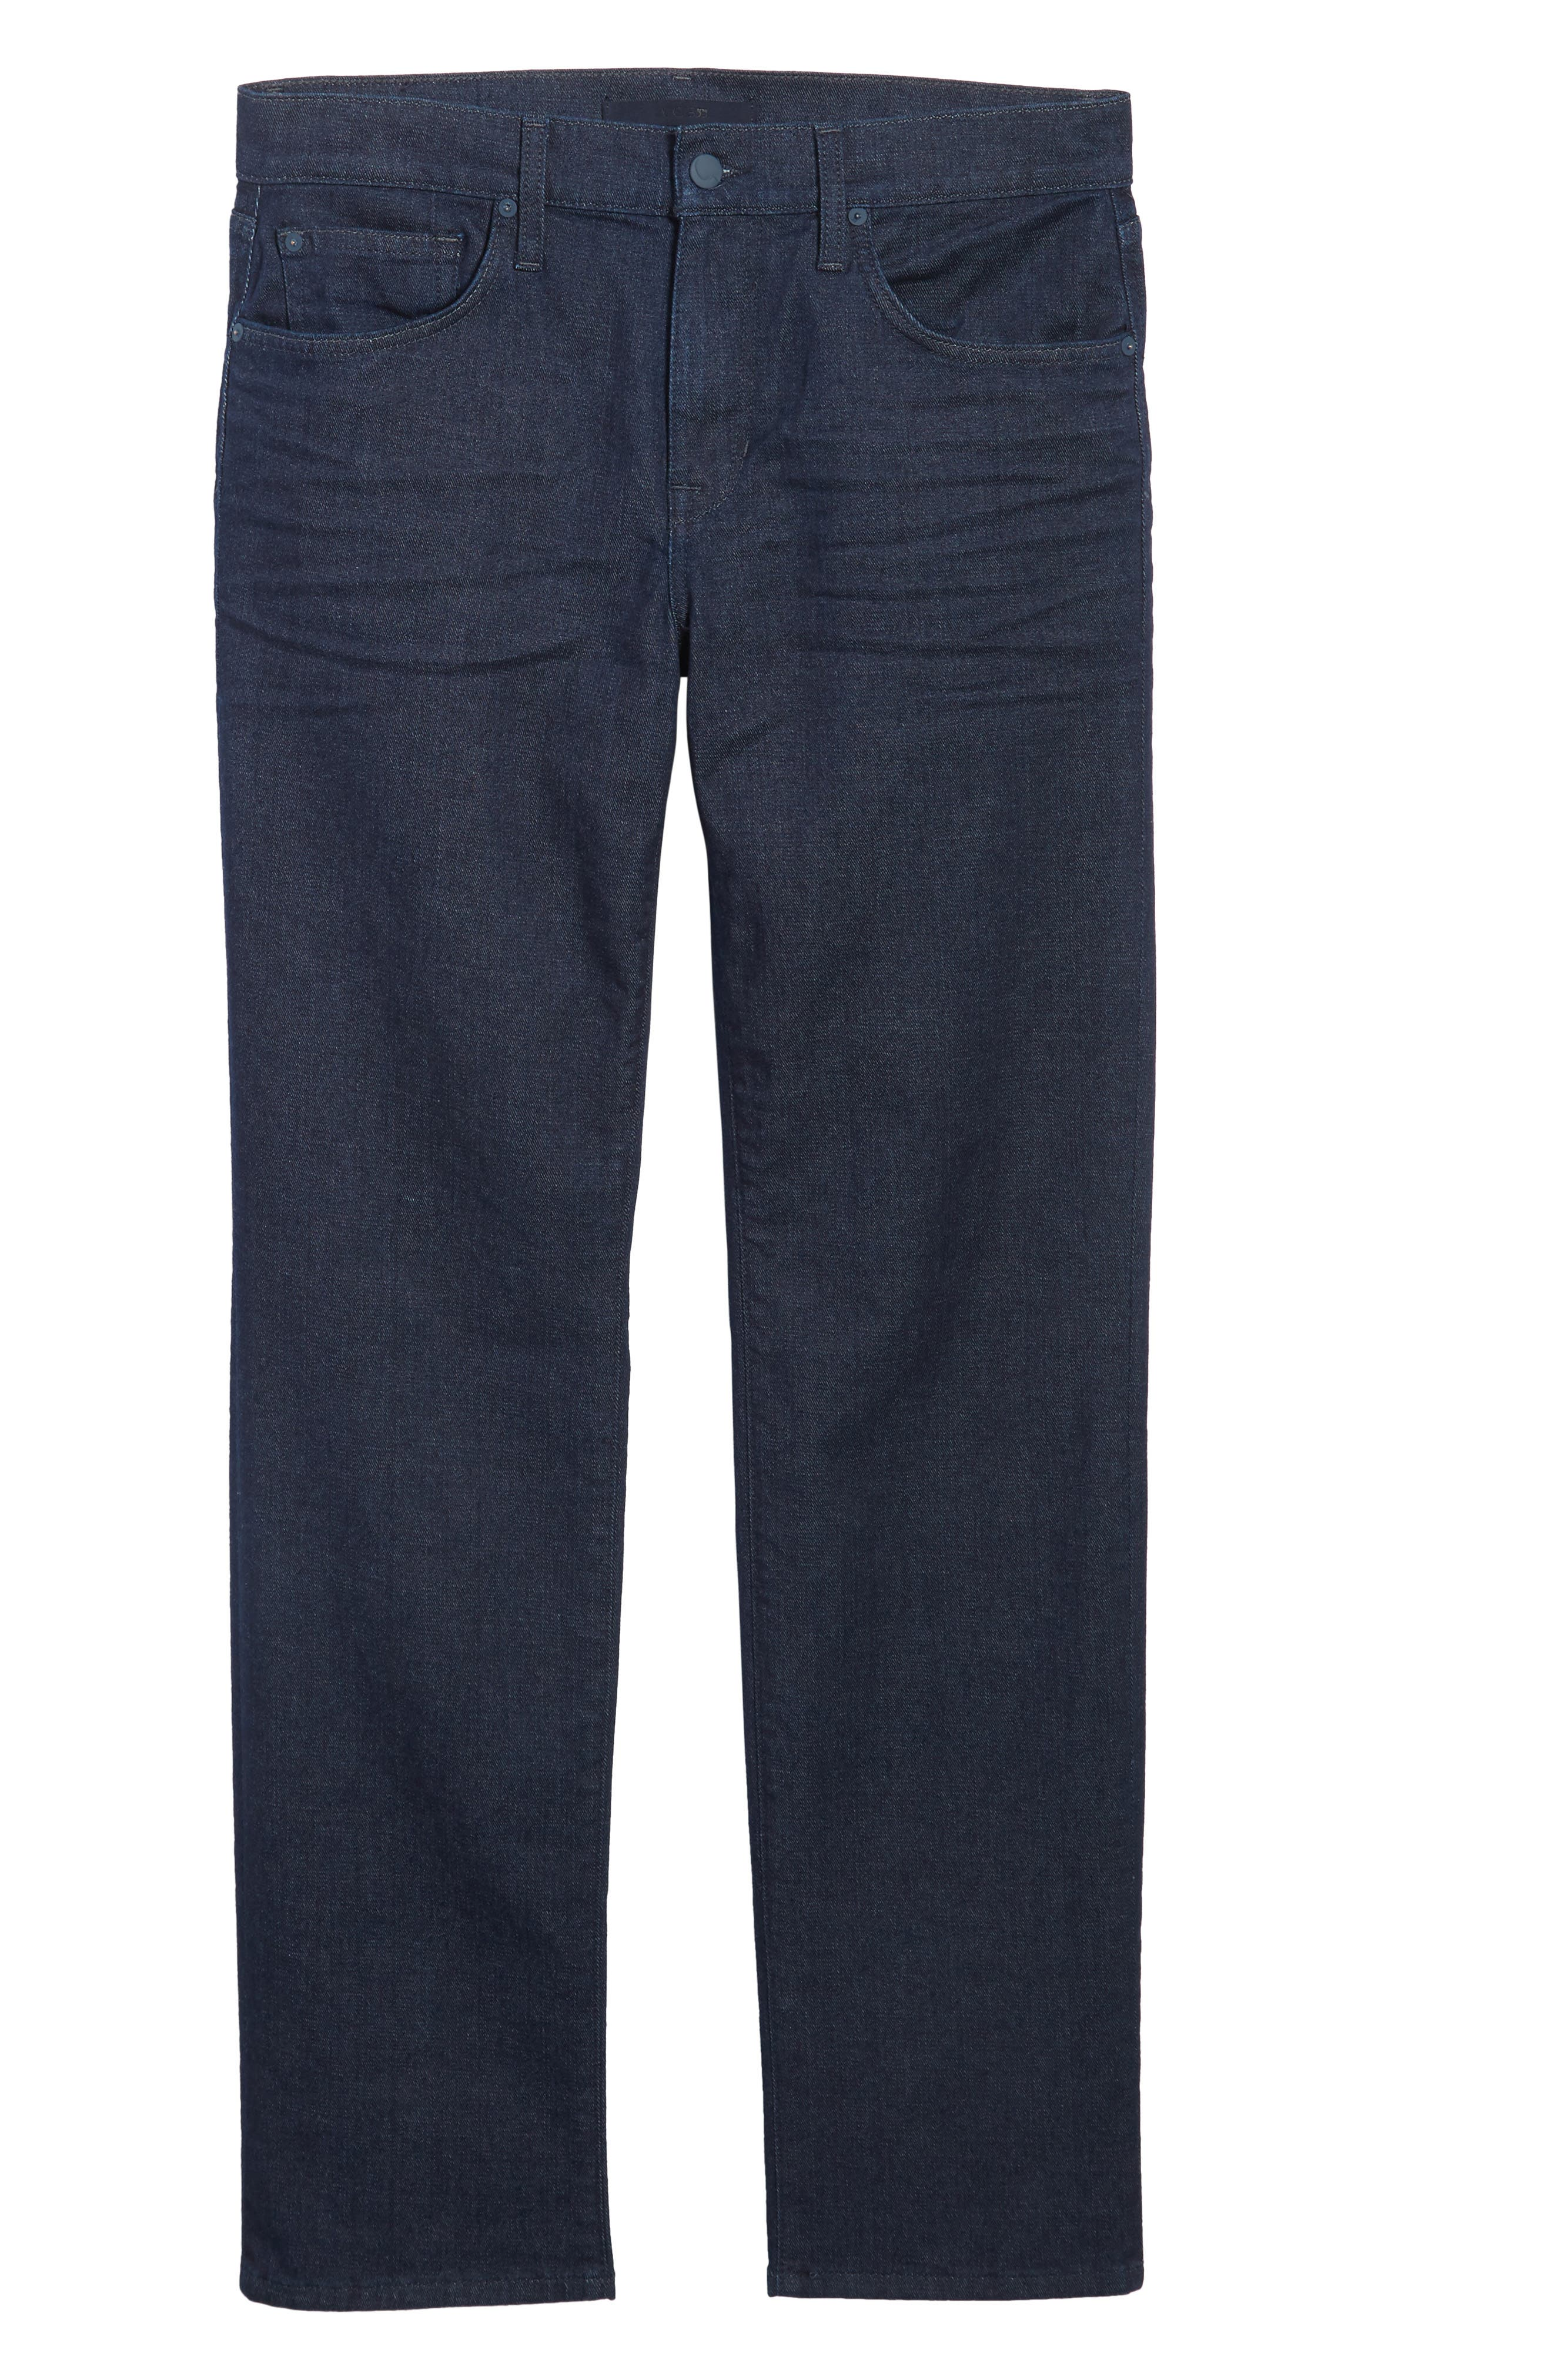 Classic Straight Fit Jeans,                             Alternate thumbnail 6, color,                             403